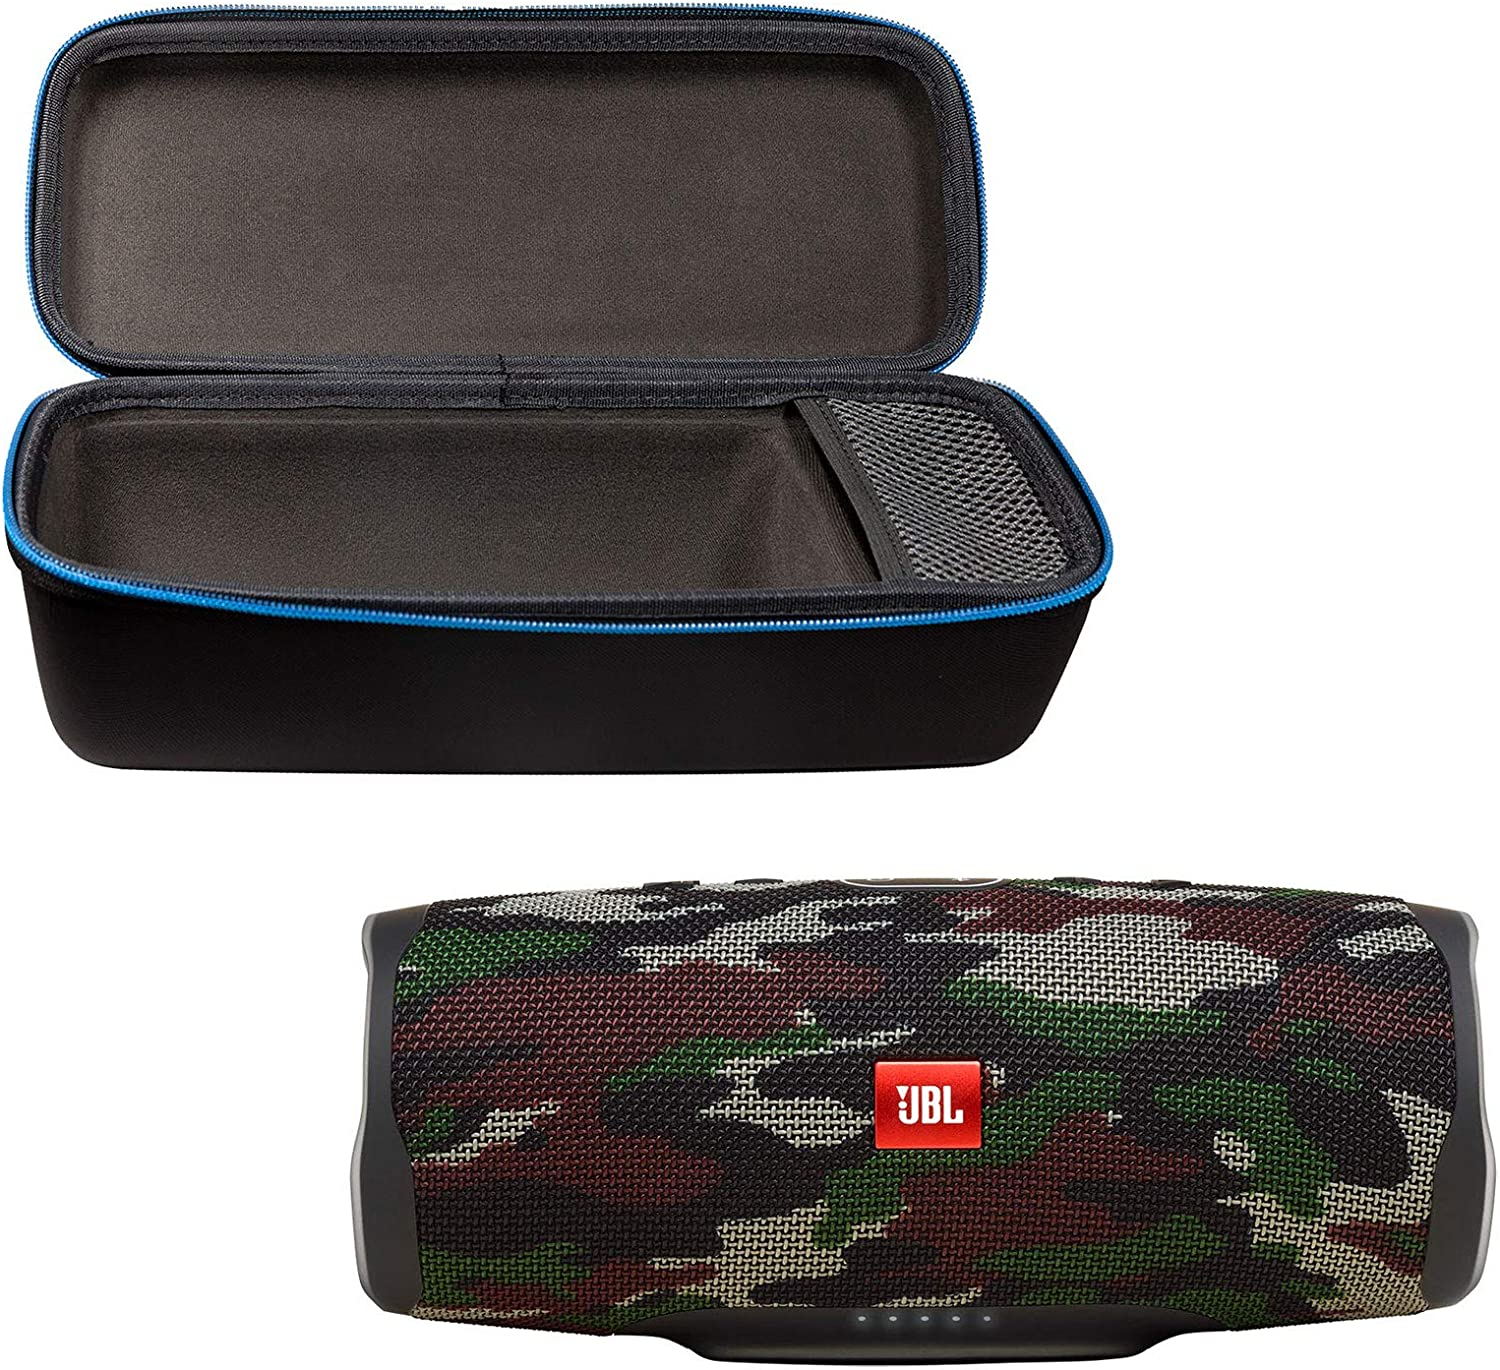 Black JBL Charge 4 Portable Waterproof Wireless Bluetooth Speaker Bundle with divvi Charge 4 Protective Hardshell Case